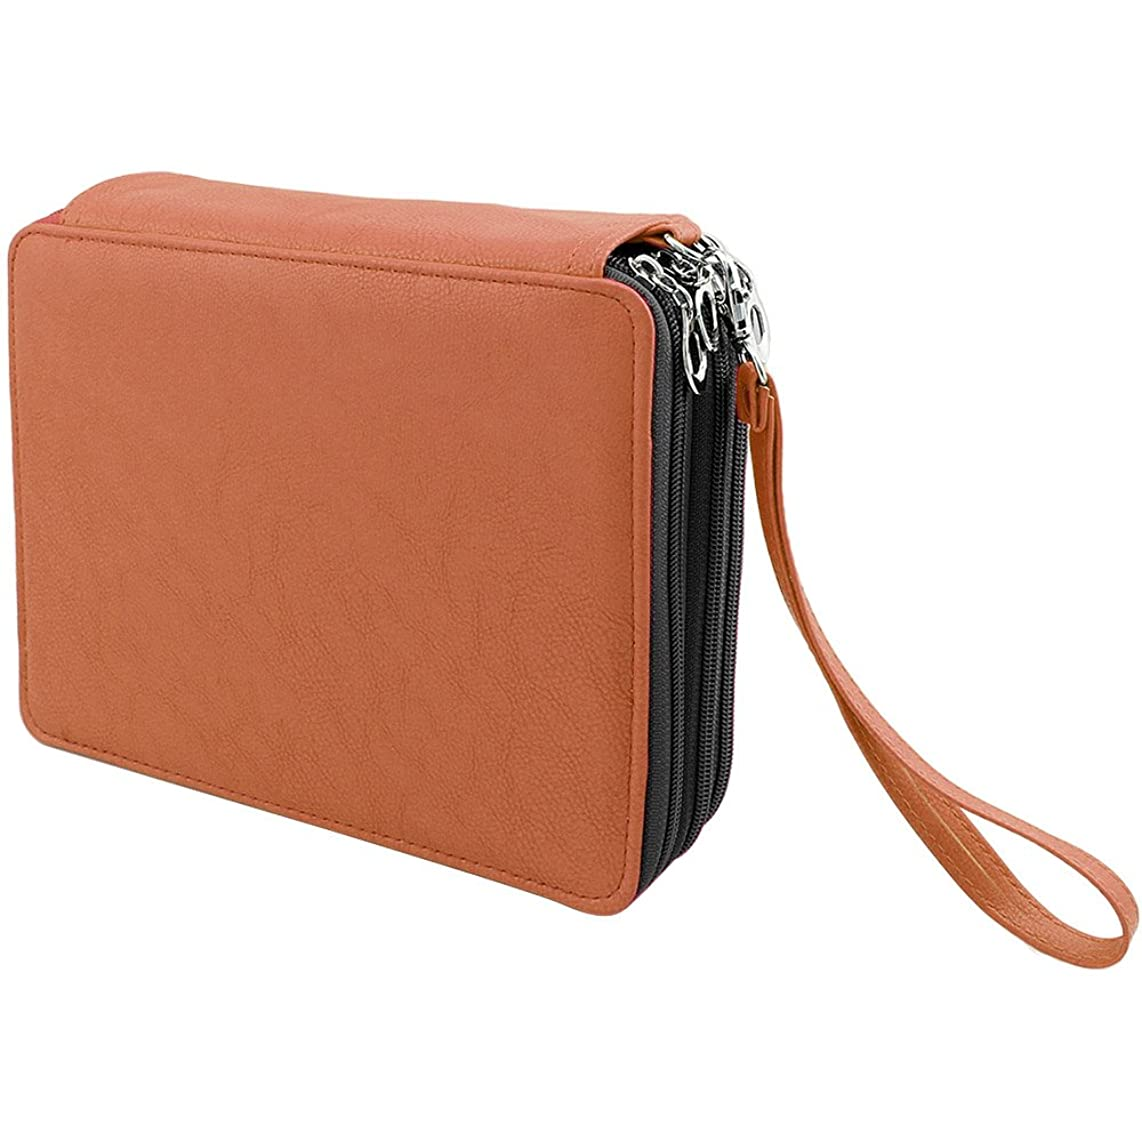 Shulaner Colored Pencil Case Organizer PU Leather Large Capacity Portable Pencil Bag, 126 Slots